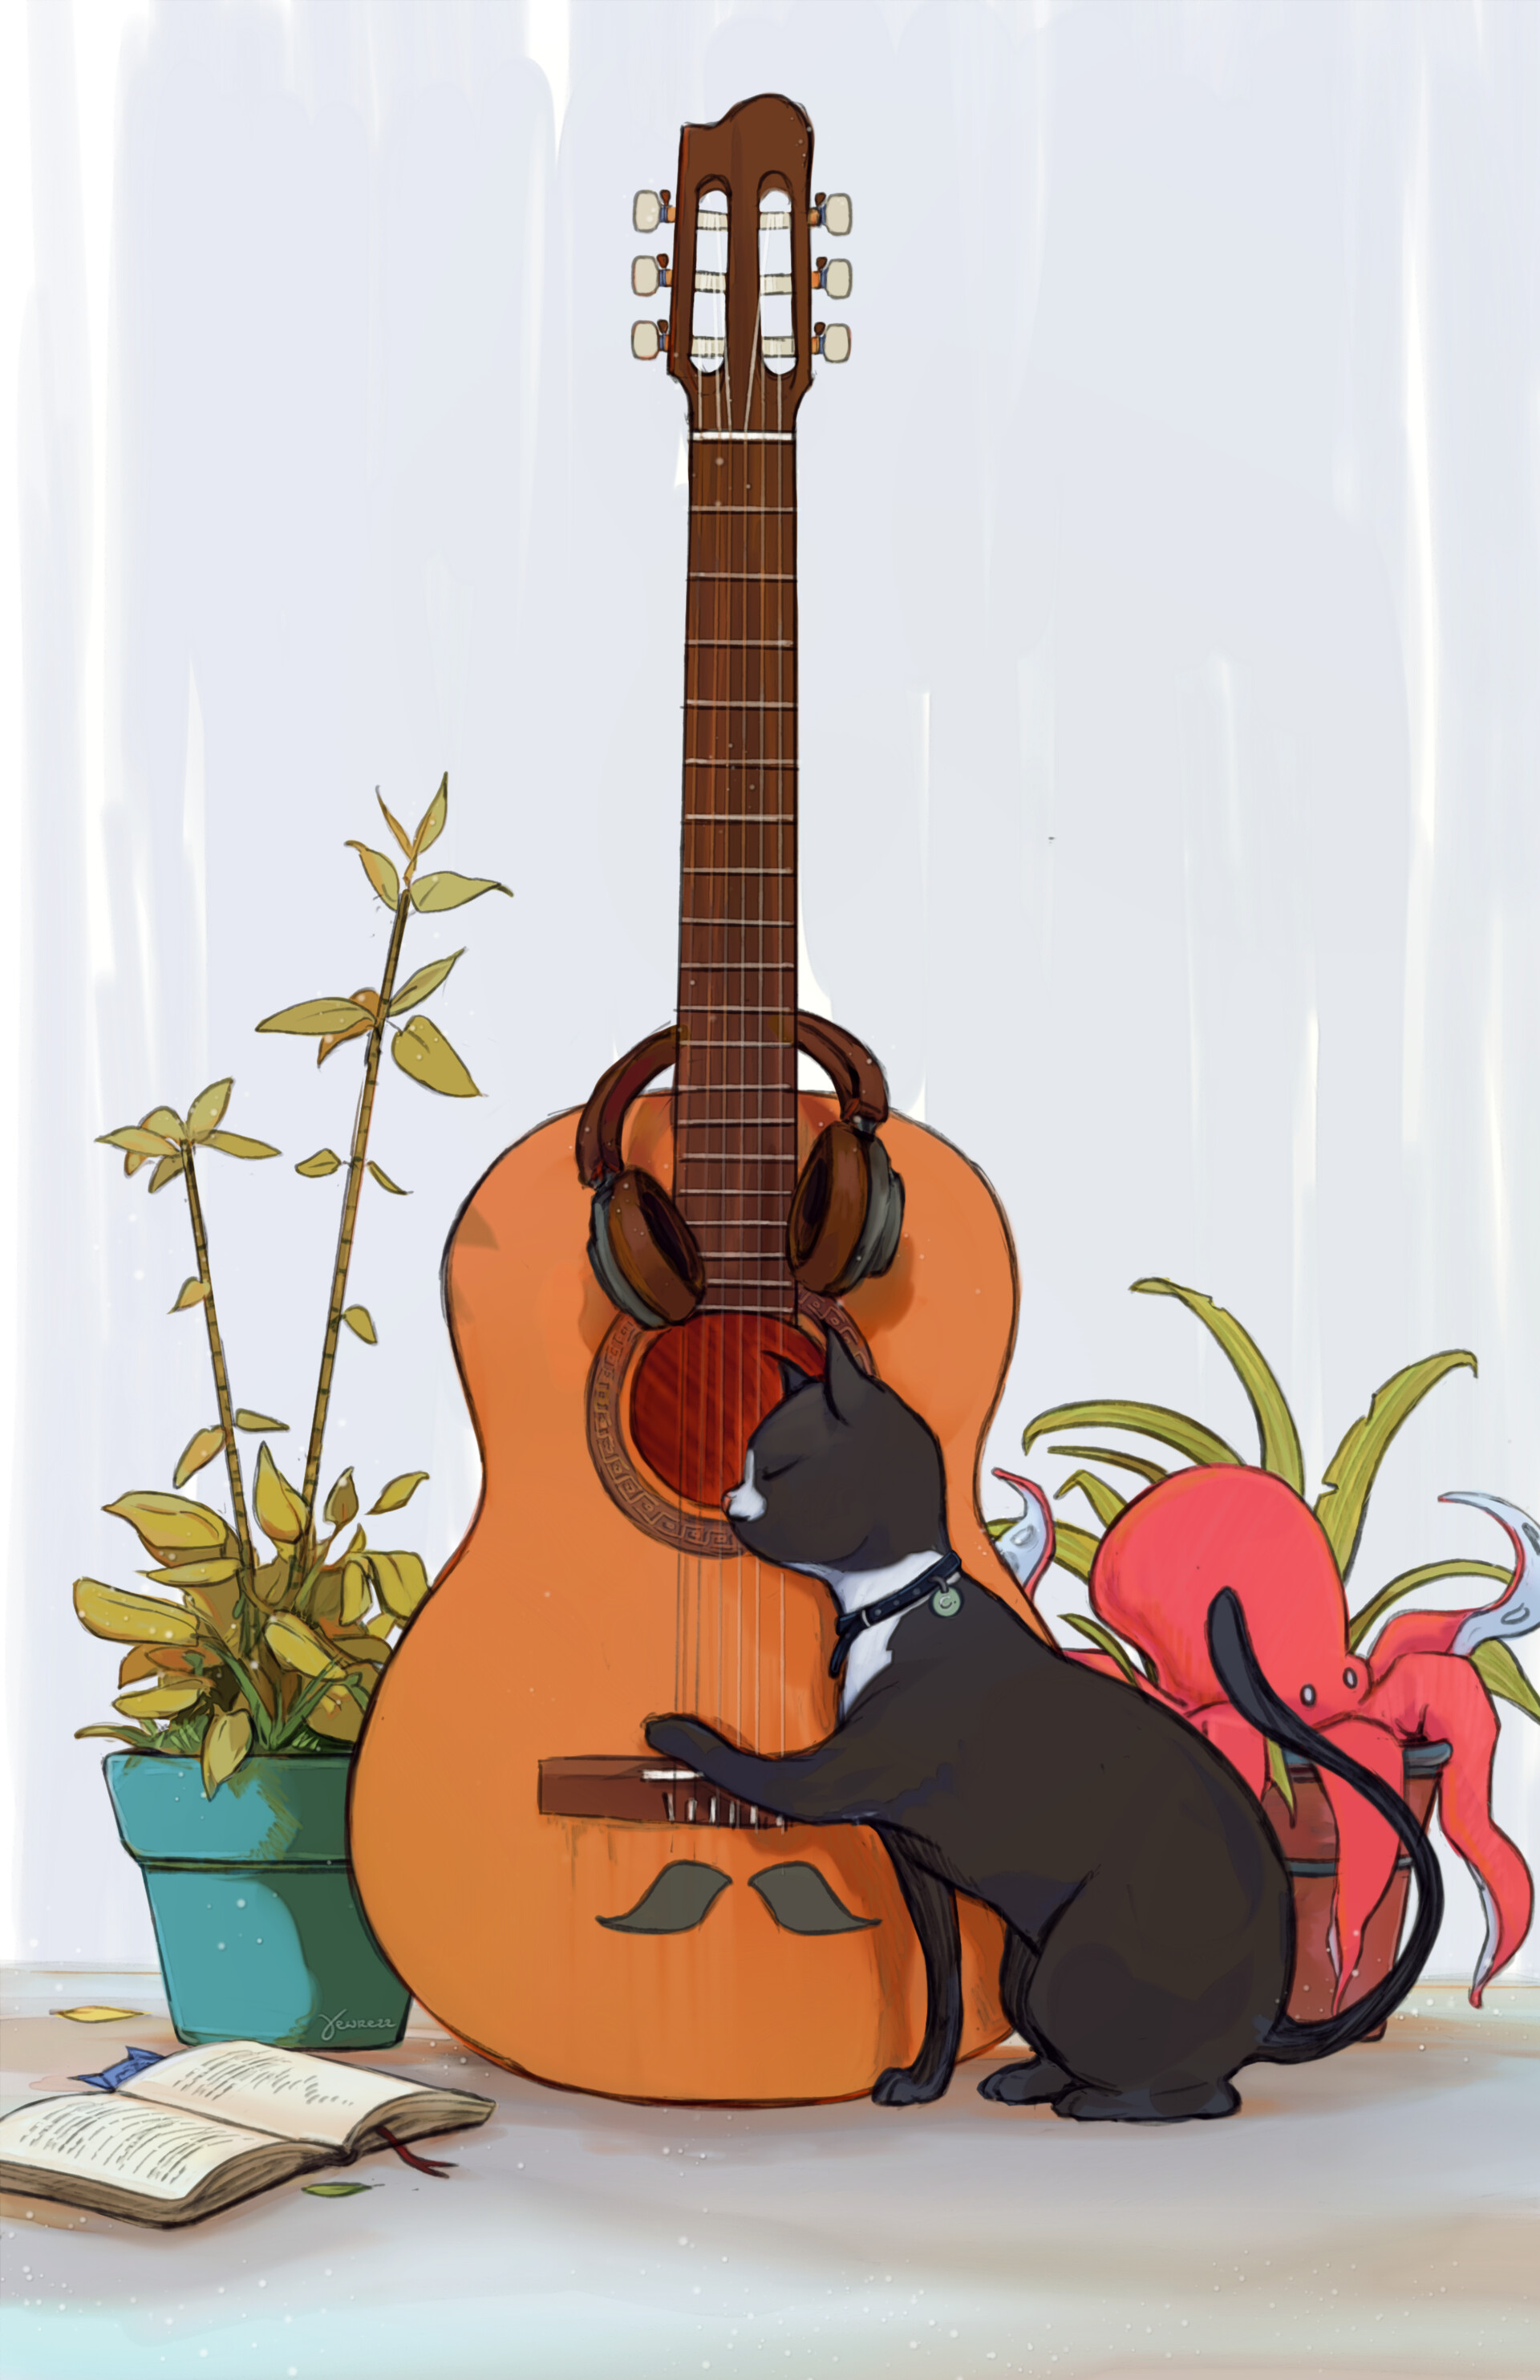 Artstation A Cat Playing Happy Birthday On The Guitar Yewrezz